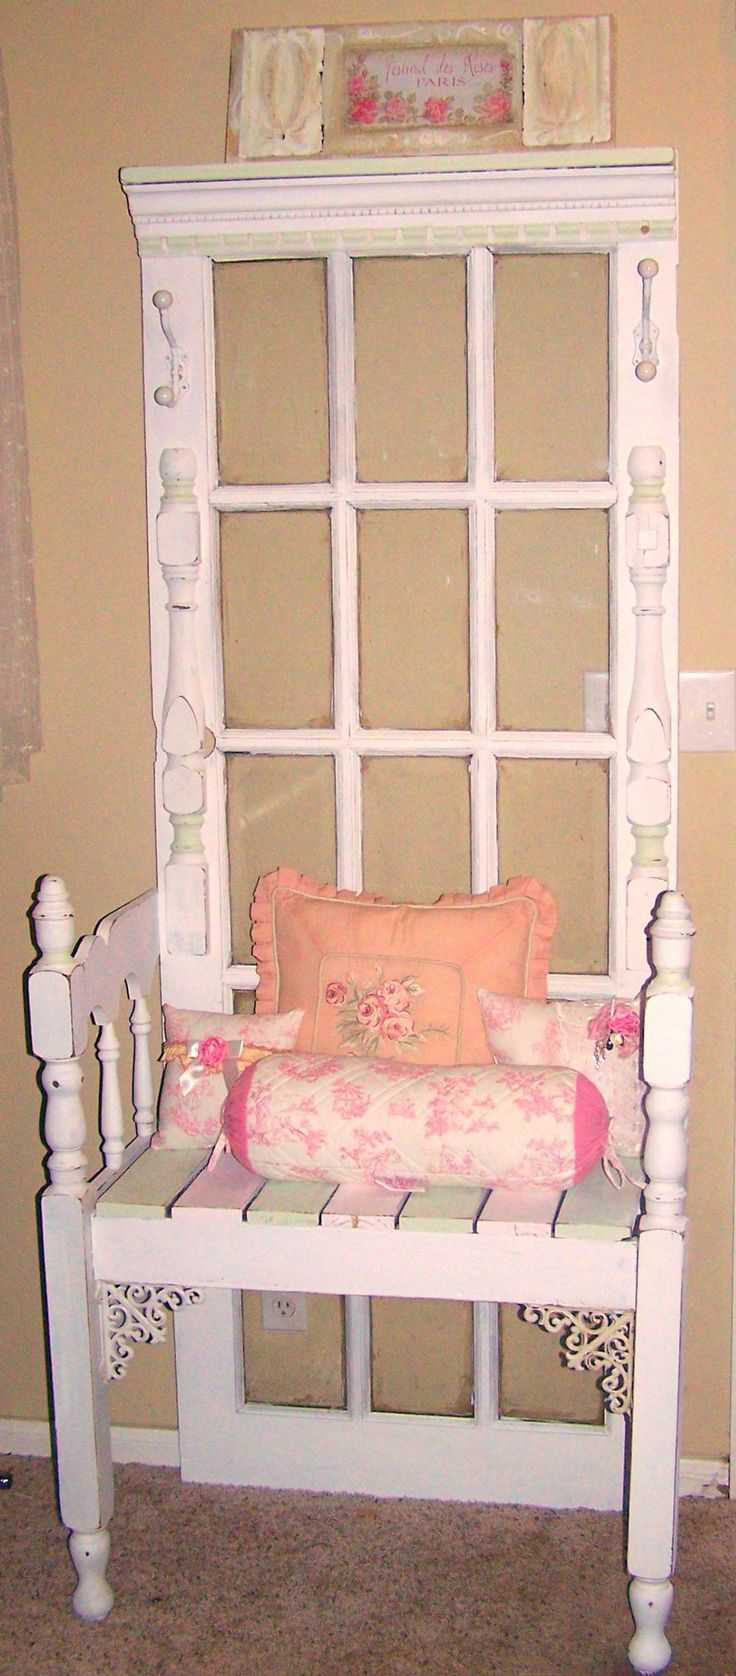 door adds a great touch to this repurposed bench...looks like a throne - for Loverboy's Mother of all Shops - especially after we break in and redecorate it to look shabby chic??? LOL!!!!!